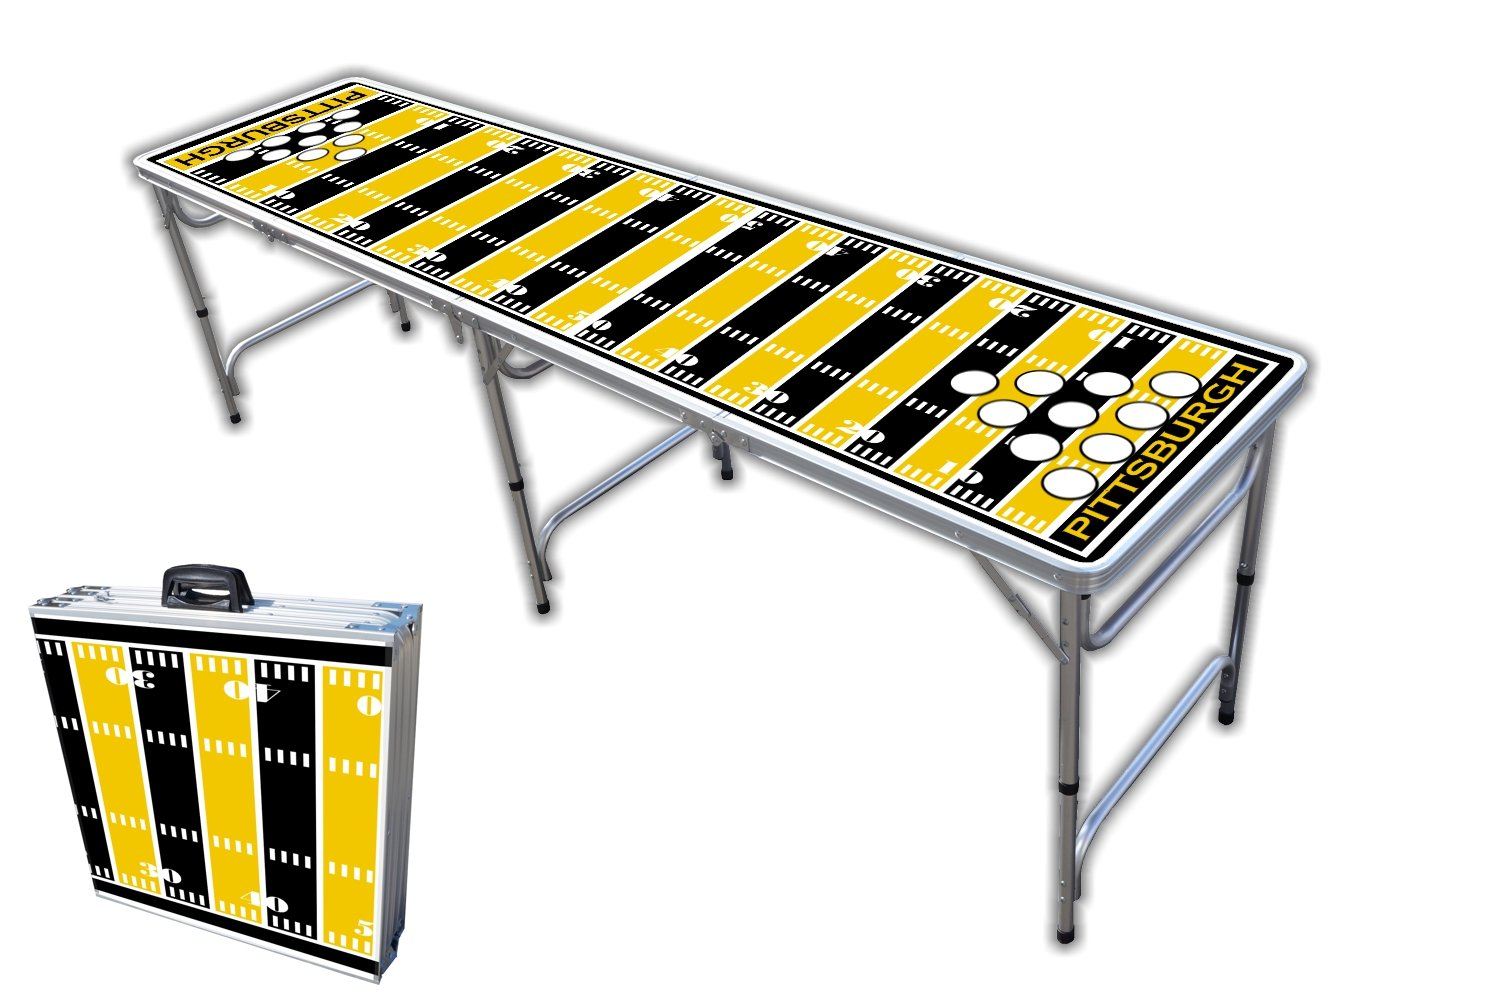 8-Foot Professional Beer Pong Table w/Holes - Pittsburgh Football Field Graphic by PartyPongTables.com